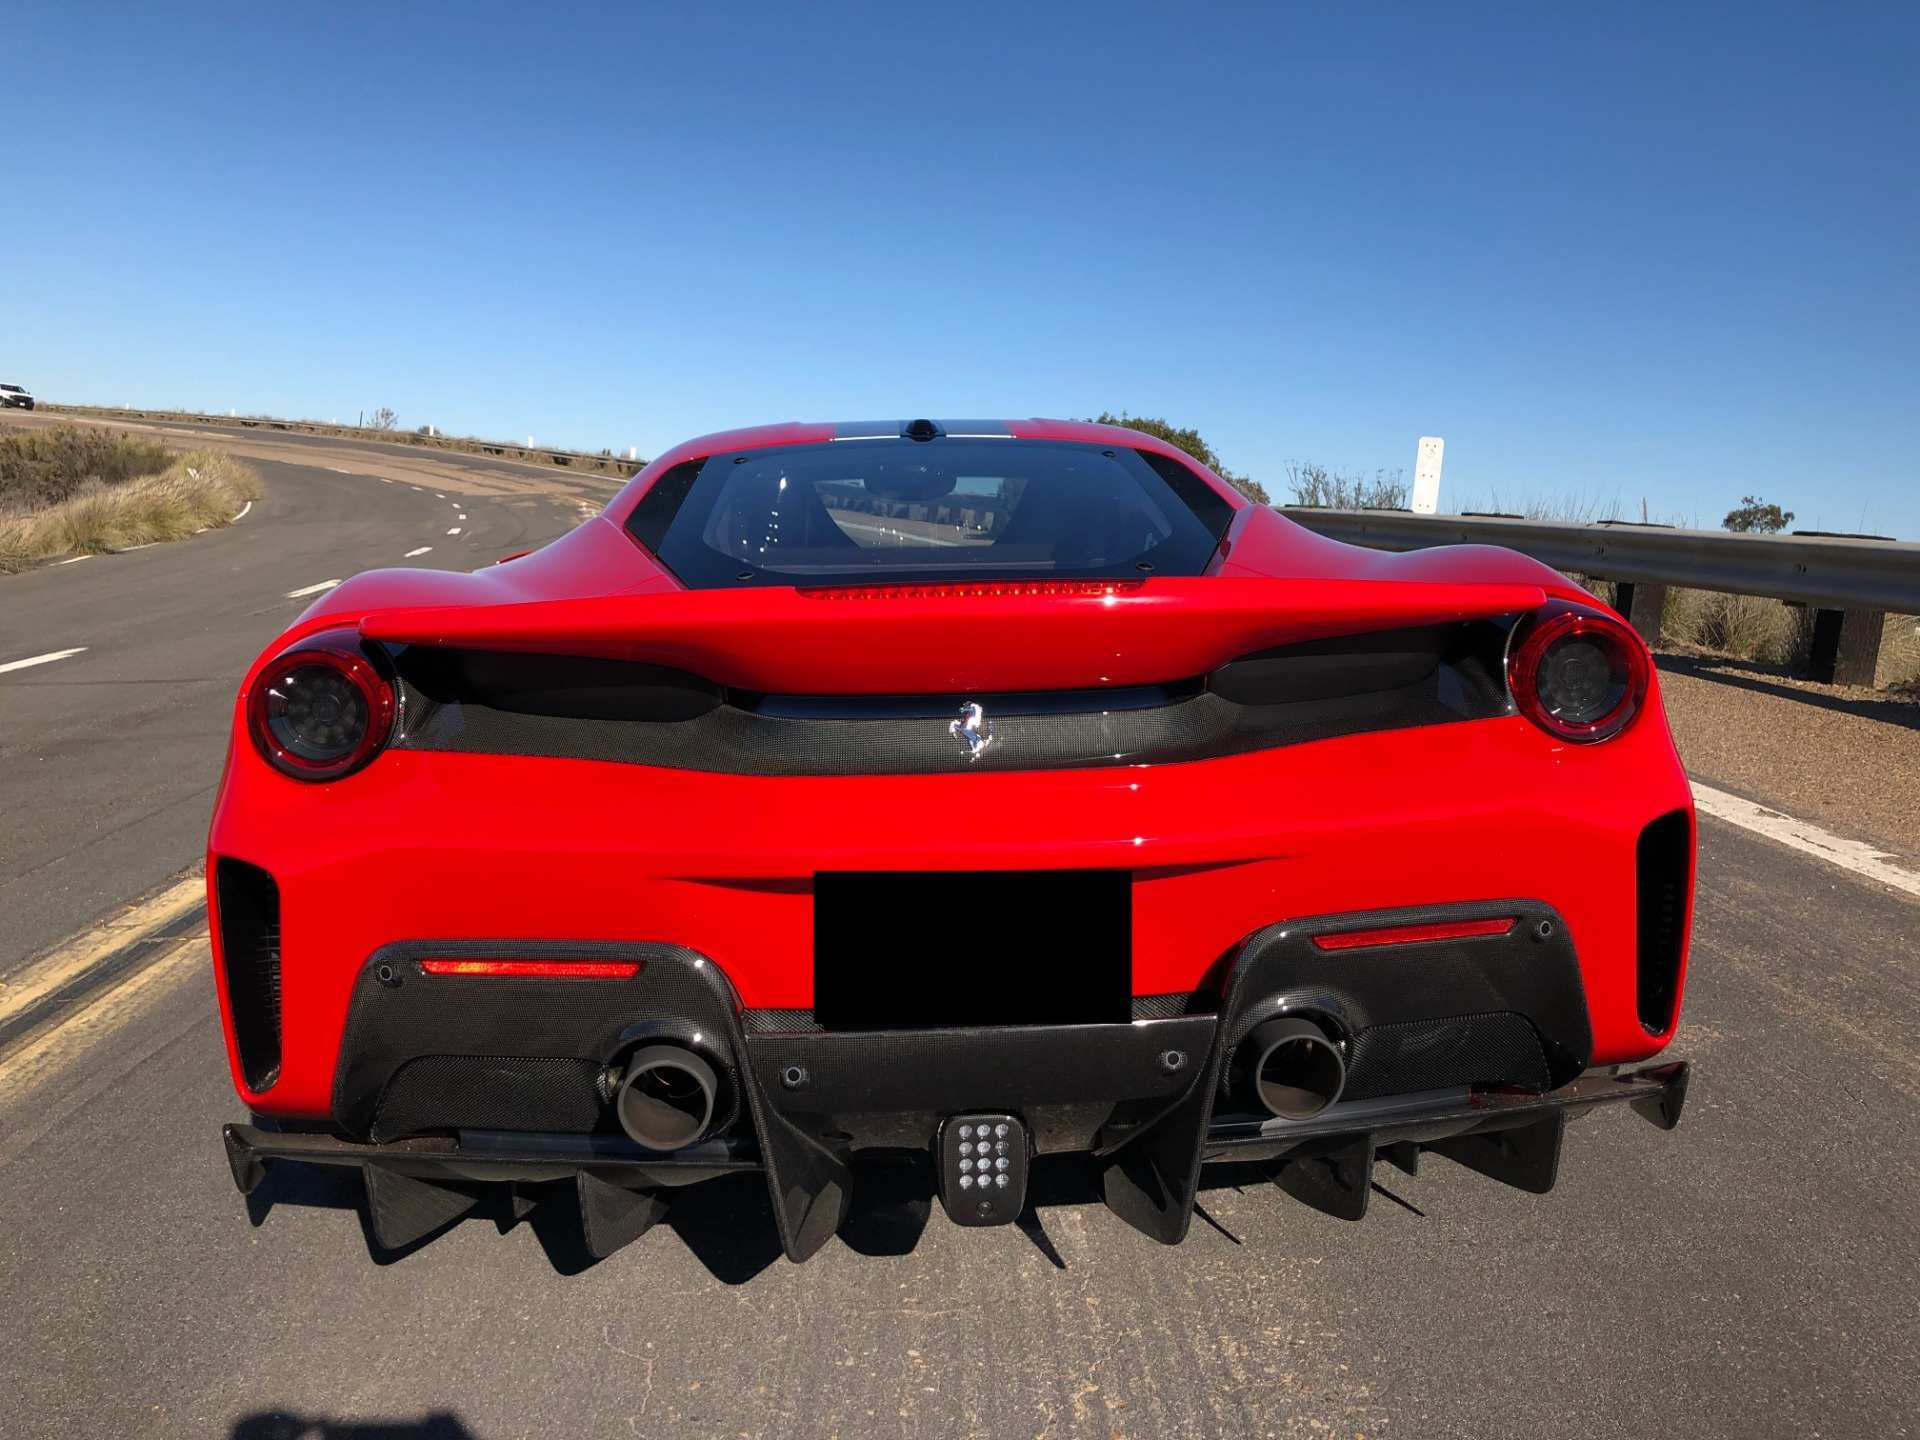 18 New 2019 Ferrari 488 Pista For Sale Price And Review